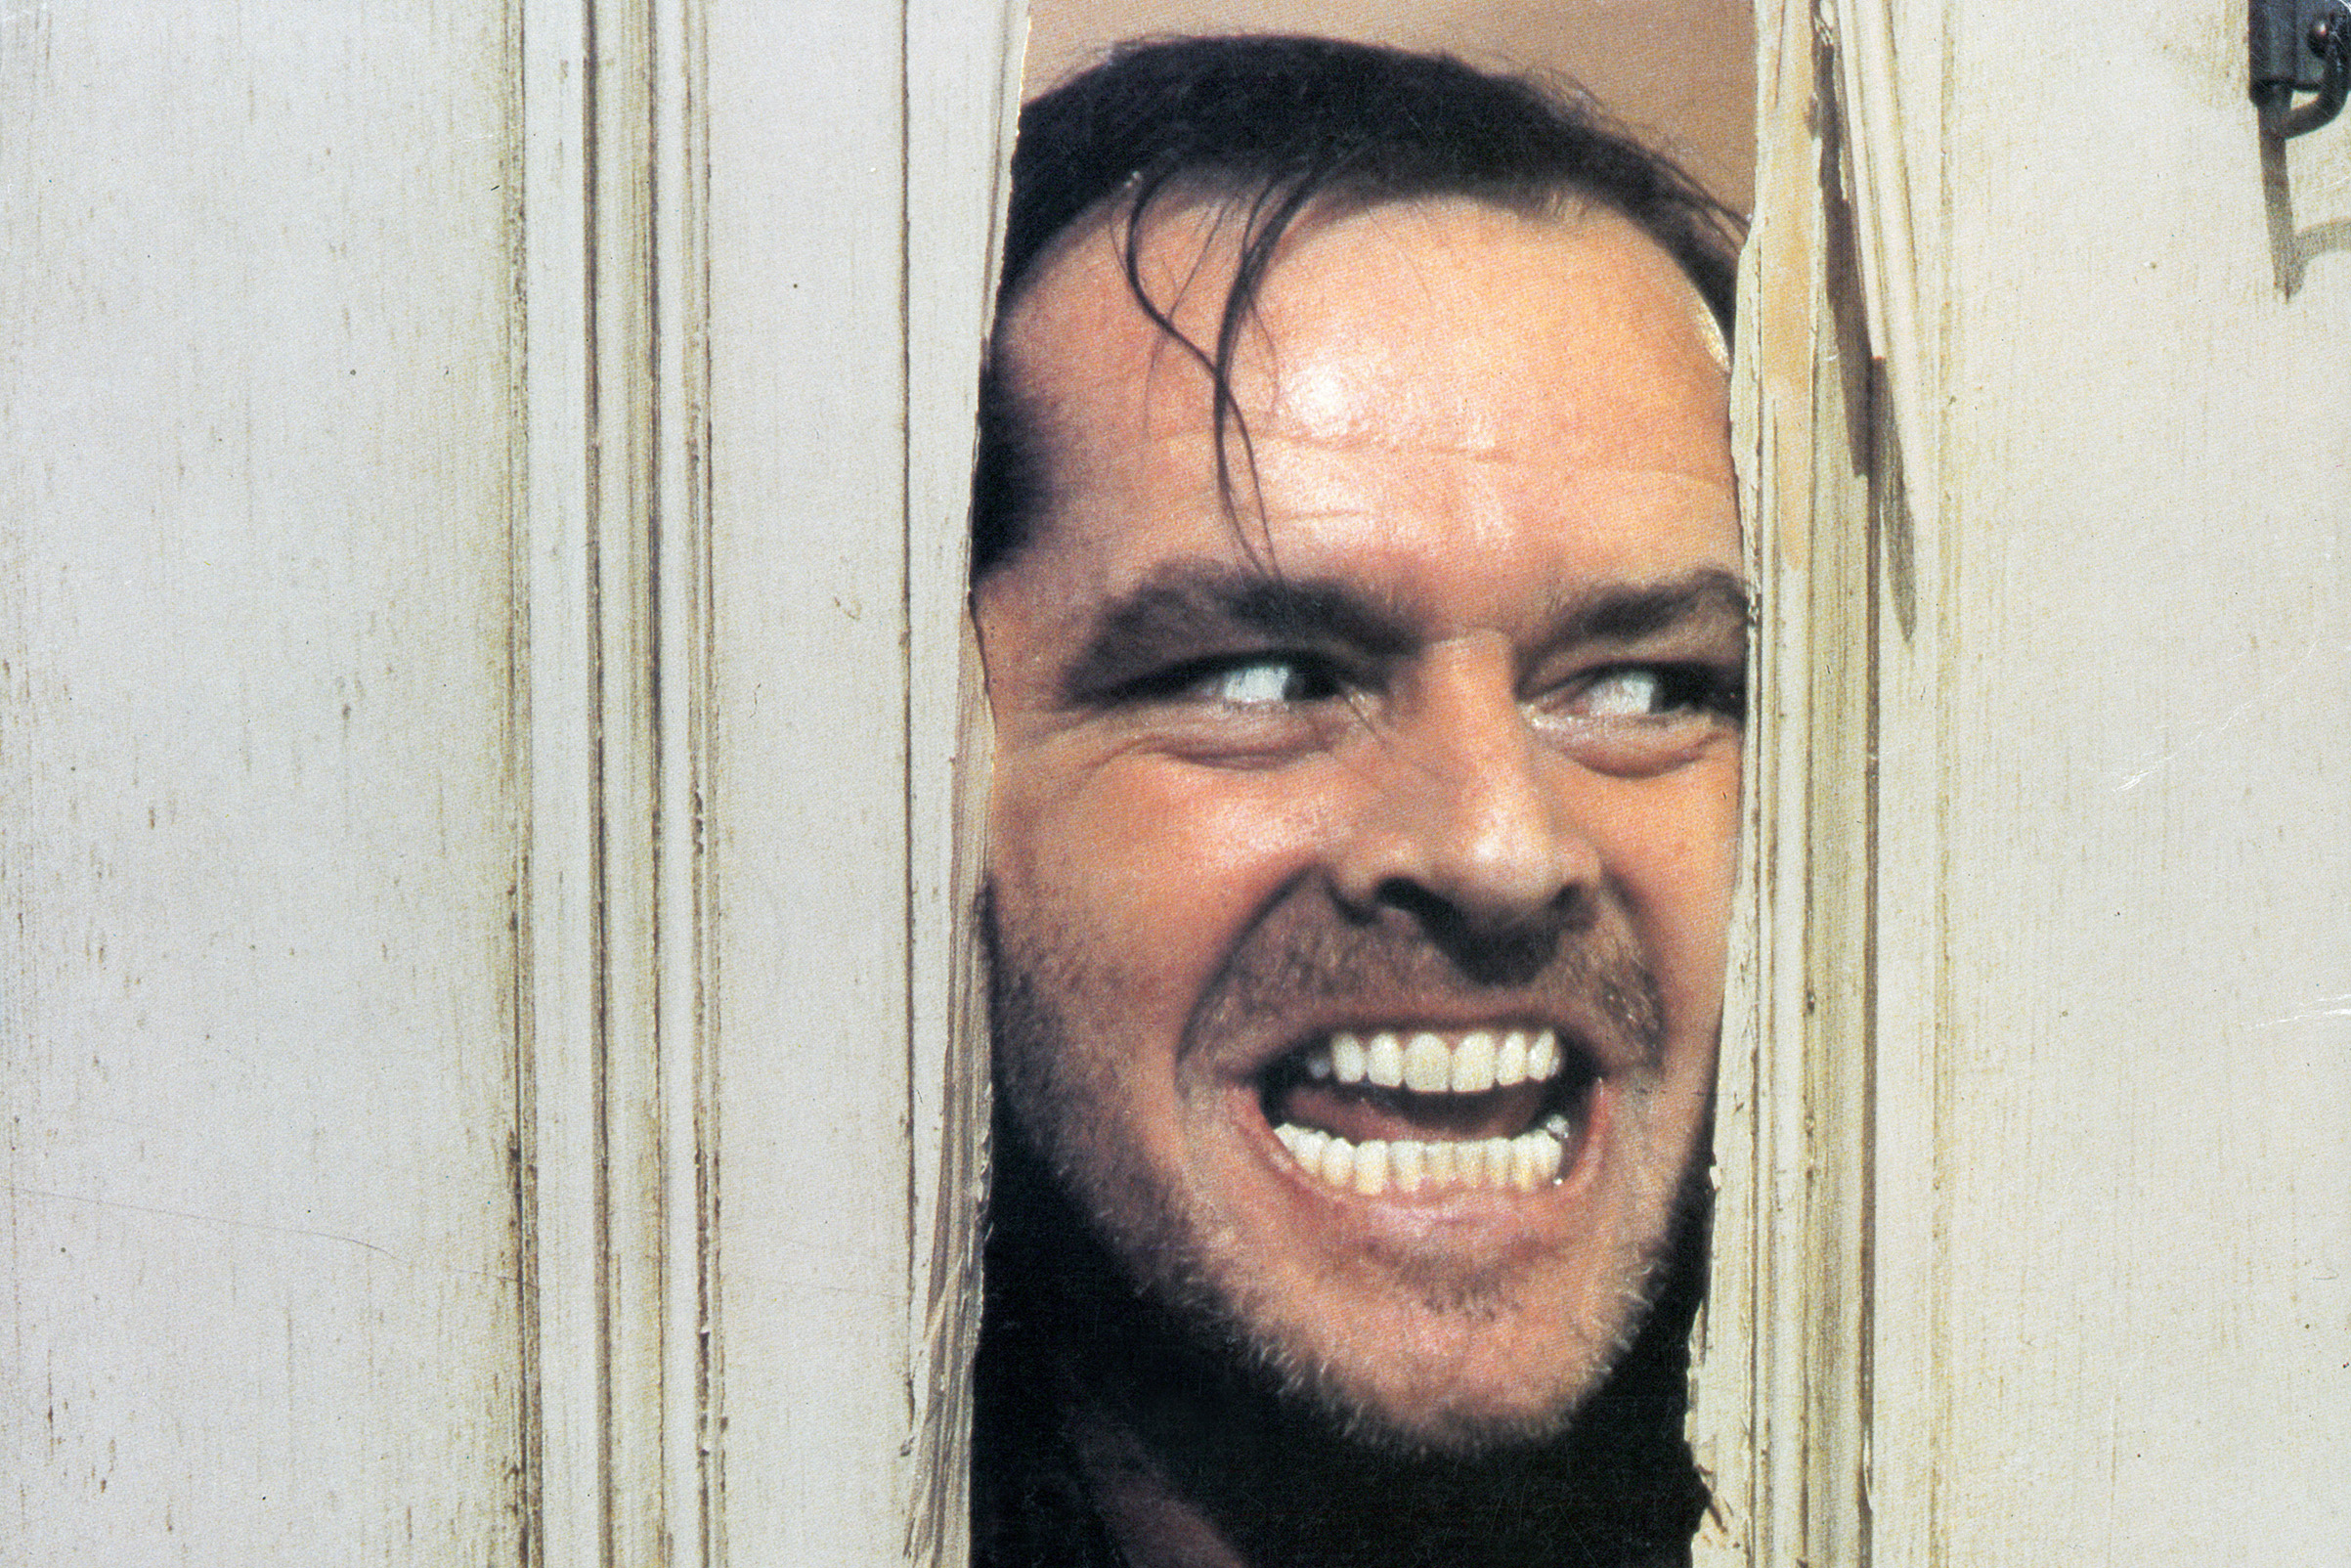 Jack Nicholson in the film 'The Shining', 1980.